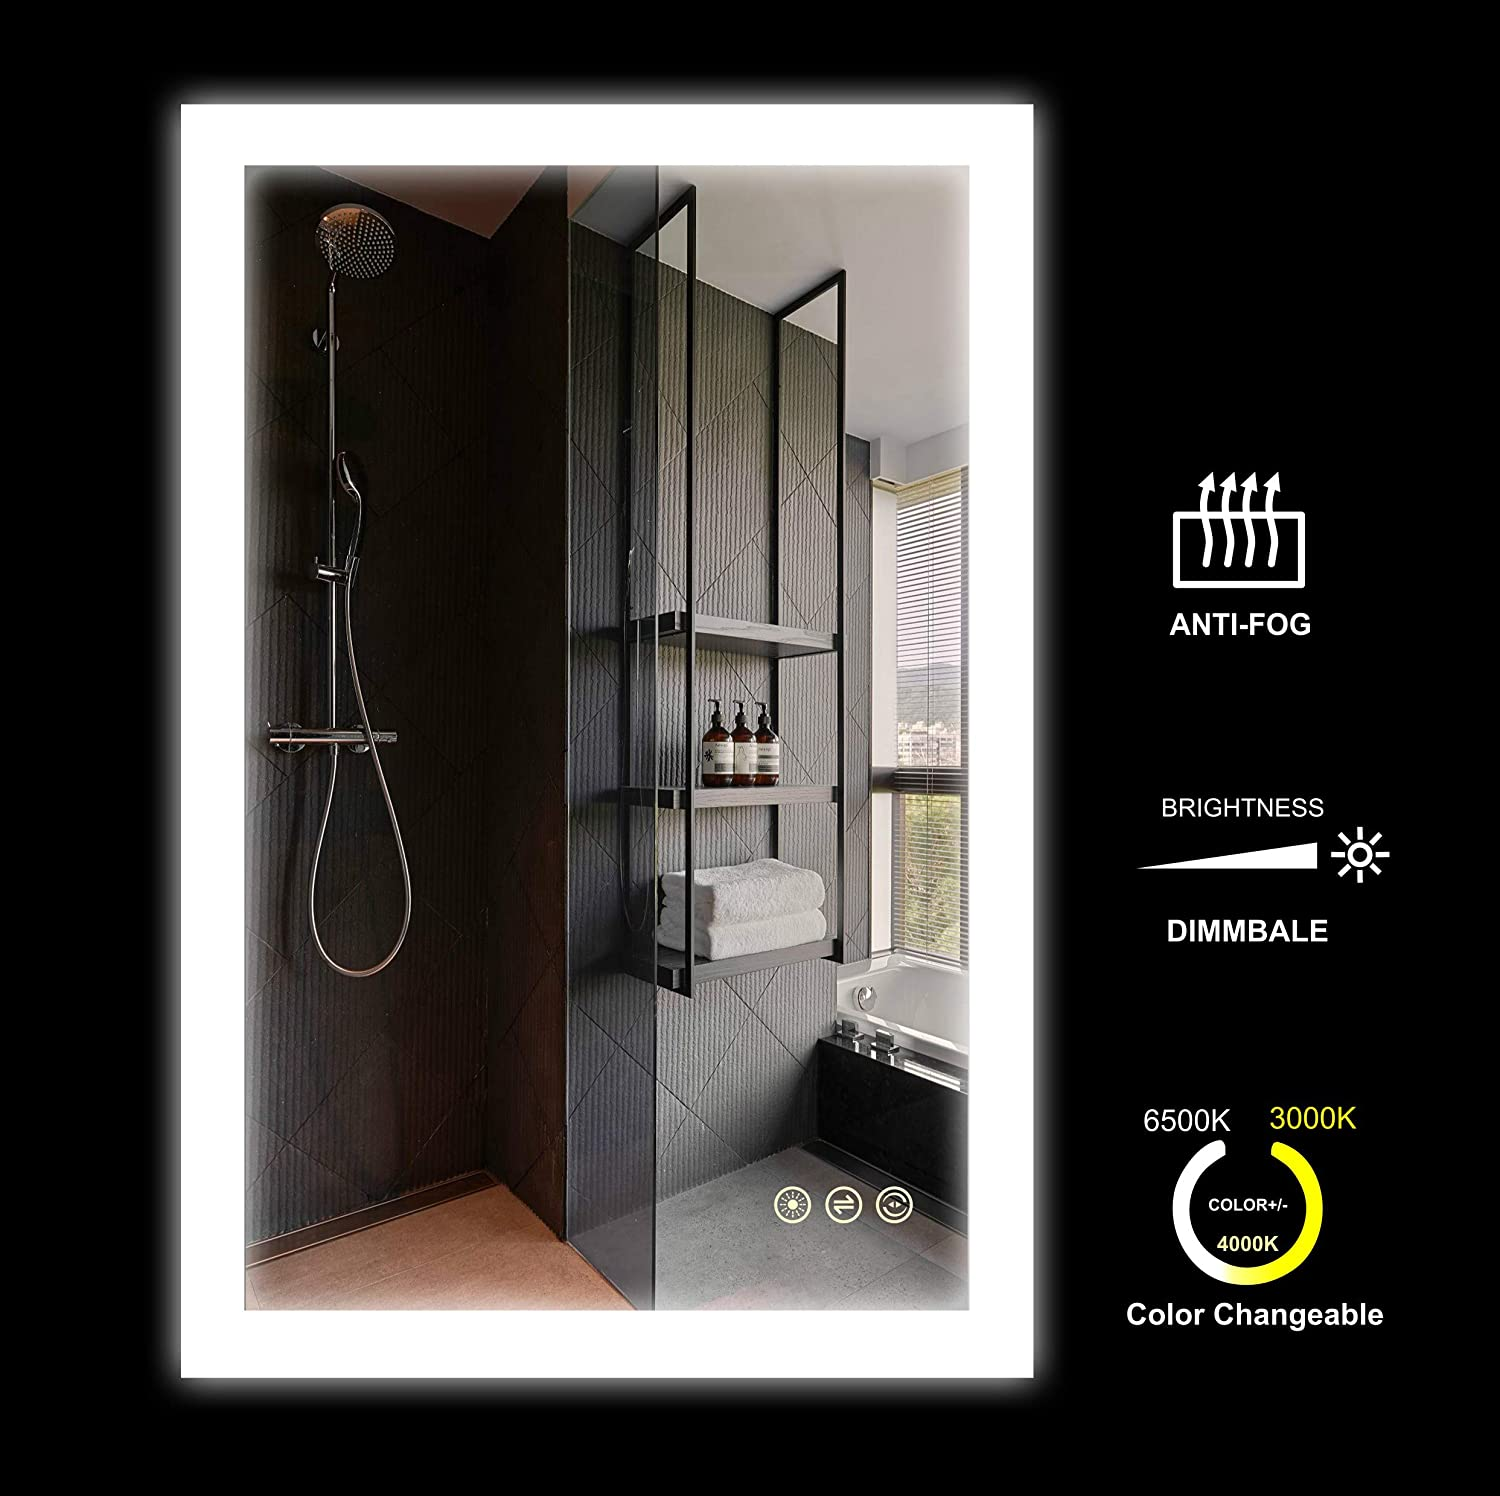 24x36 inch Wall Mounted LED Lighted Bathroom Mirror Dimmer Touch Switch +Anti Fog +IP44 Waterproof +3000K Warm White+4000K Neutral White+6500K Cool White +CRI>90 +Vertical and Horizontal Installation